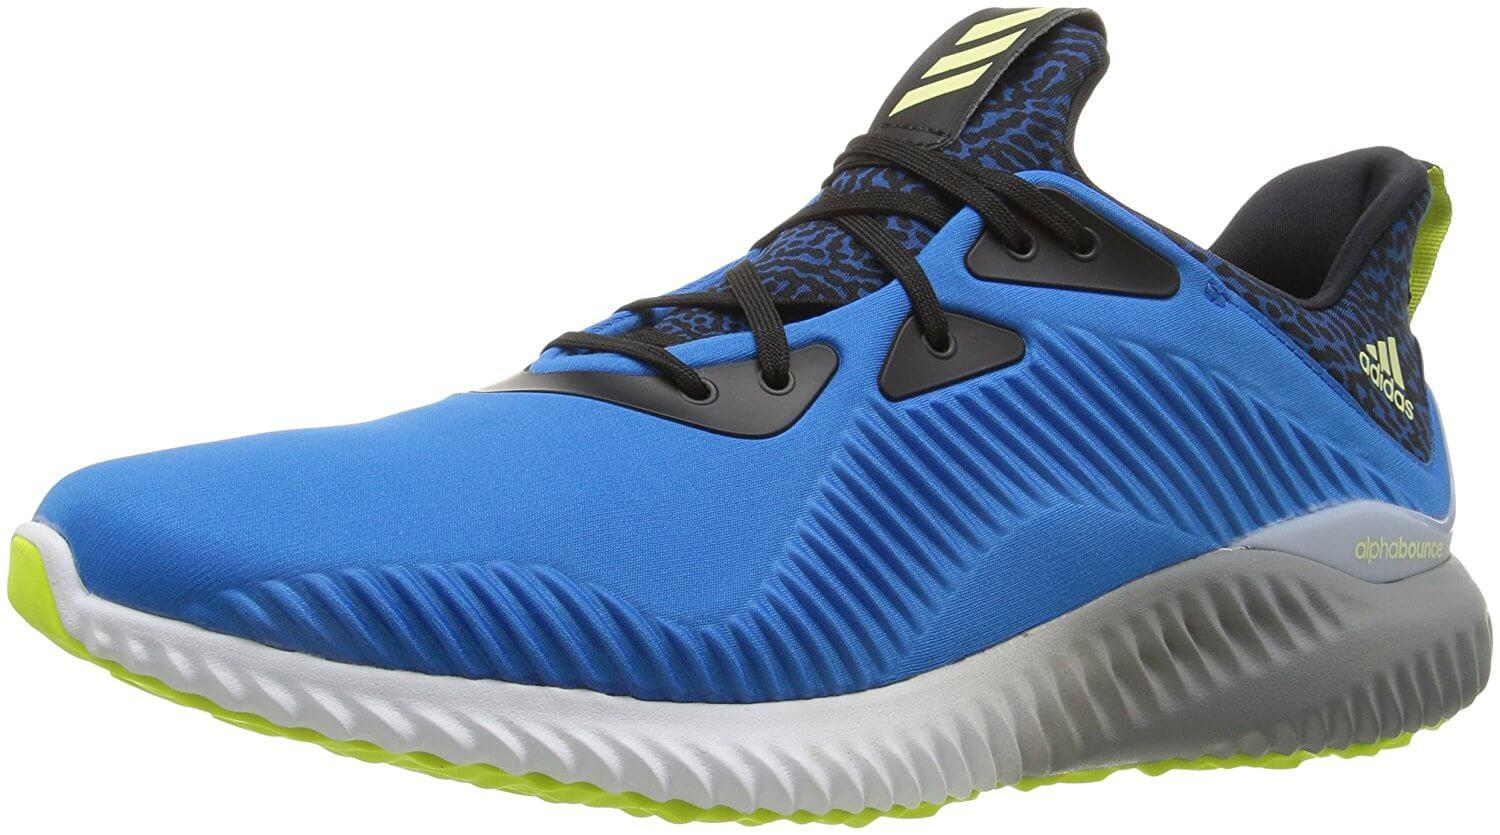 c818b5a02c64e Adidas Alphabounce Reviewed - To Buy or Not in May 2019